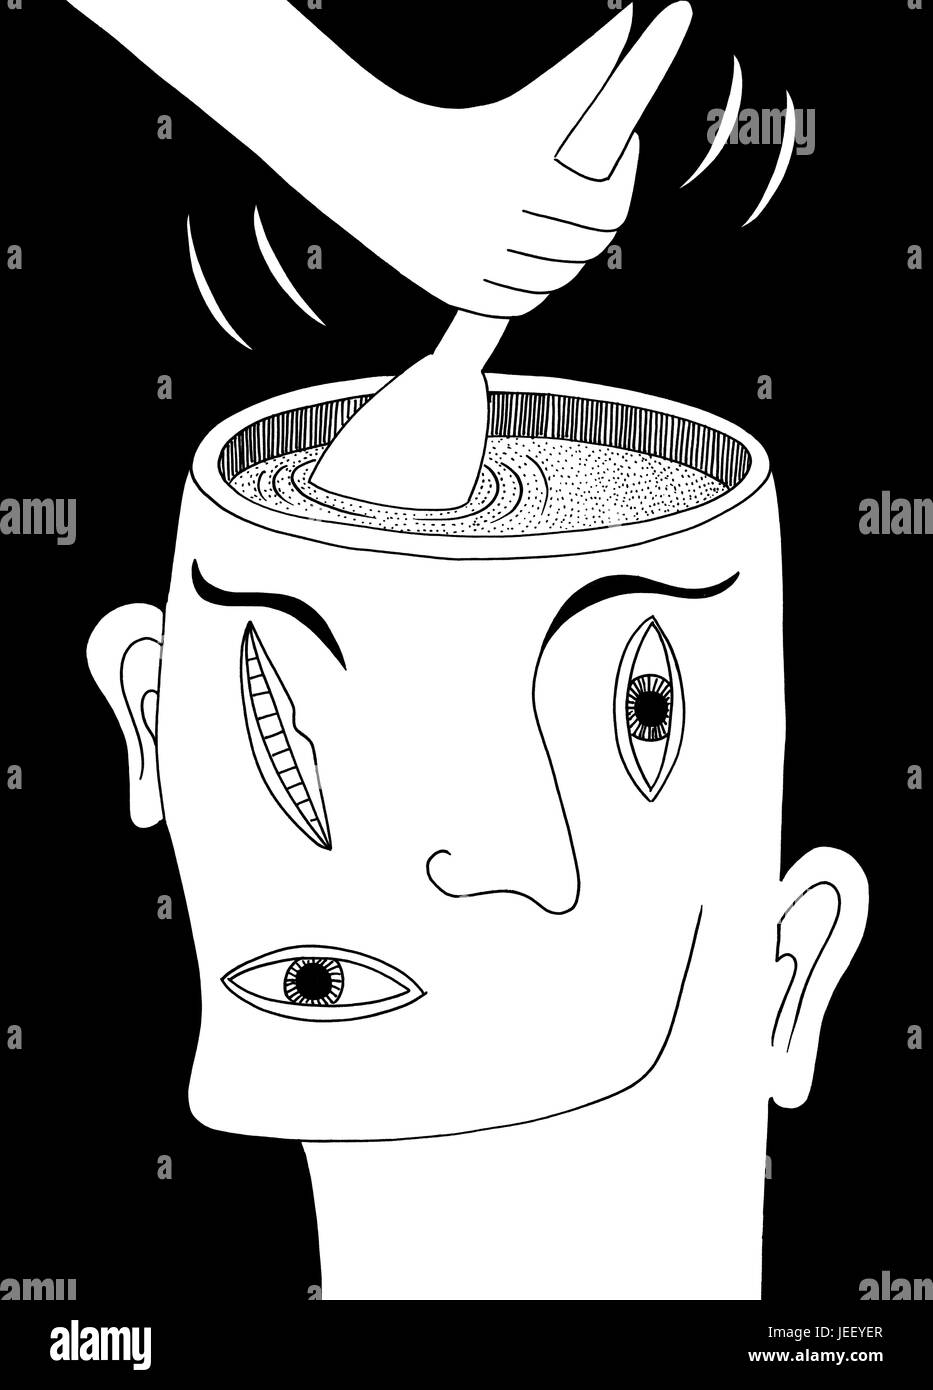 Something is stirring. A black and white editorial illustration.Stock Photo